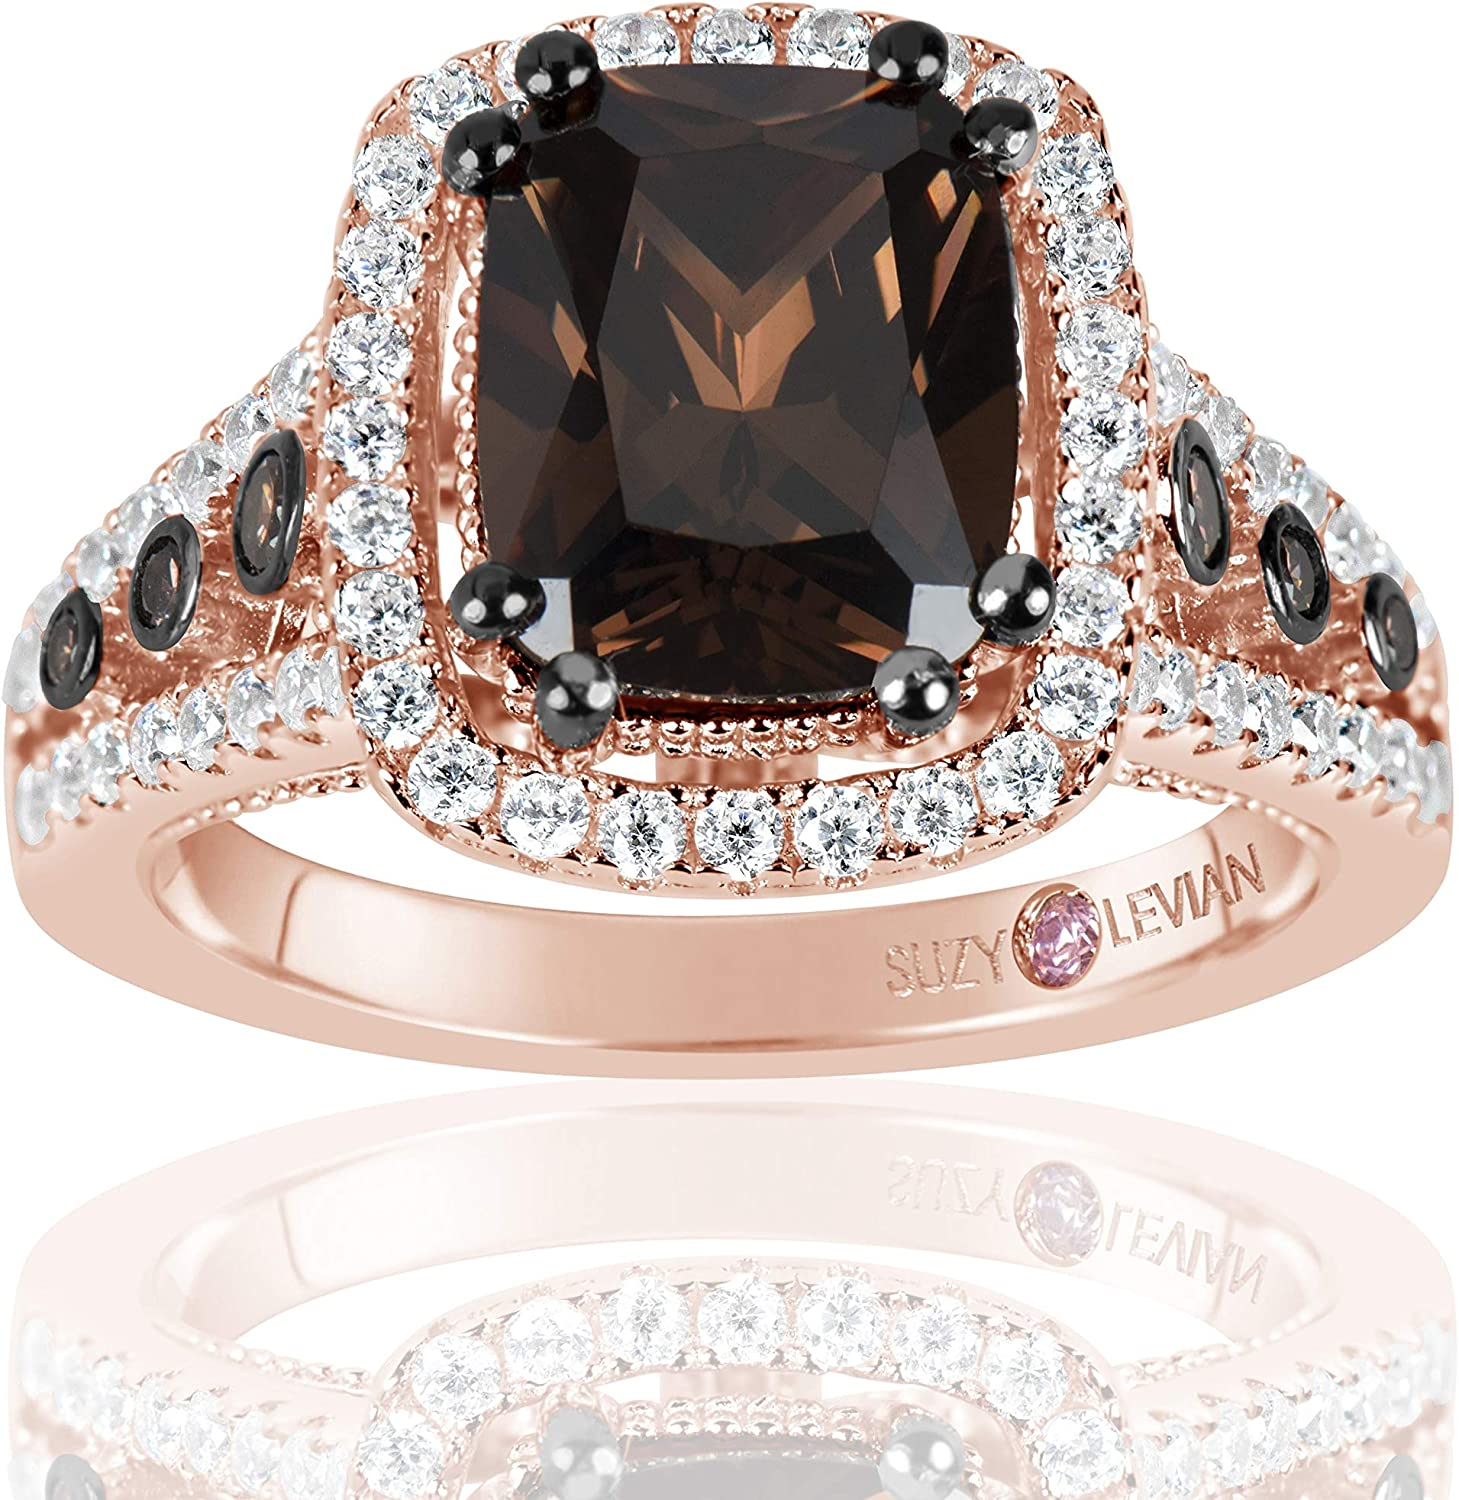 Suzy Levian Rose Sterling Silver Brown Chocolate and White Cubic Zirconia Engagement Ring